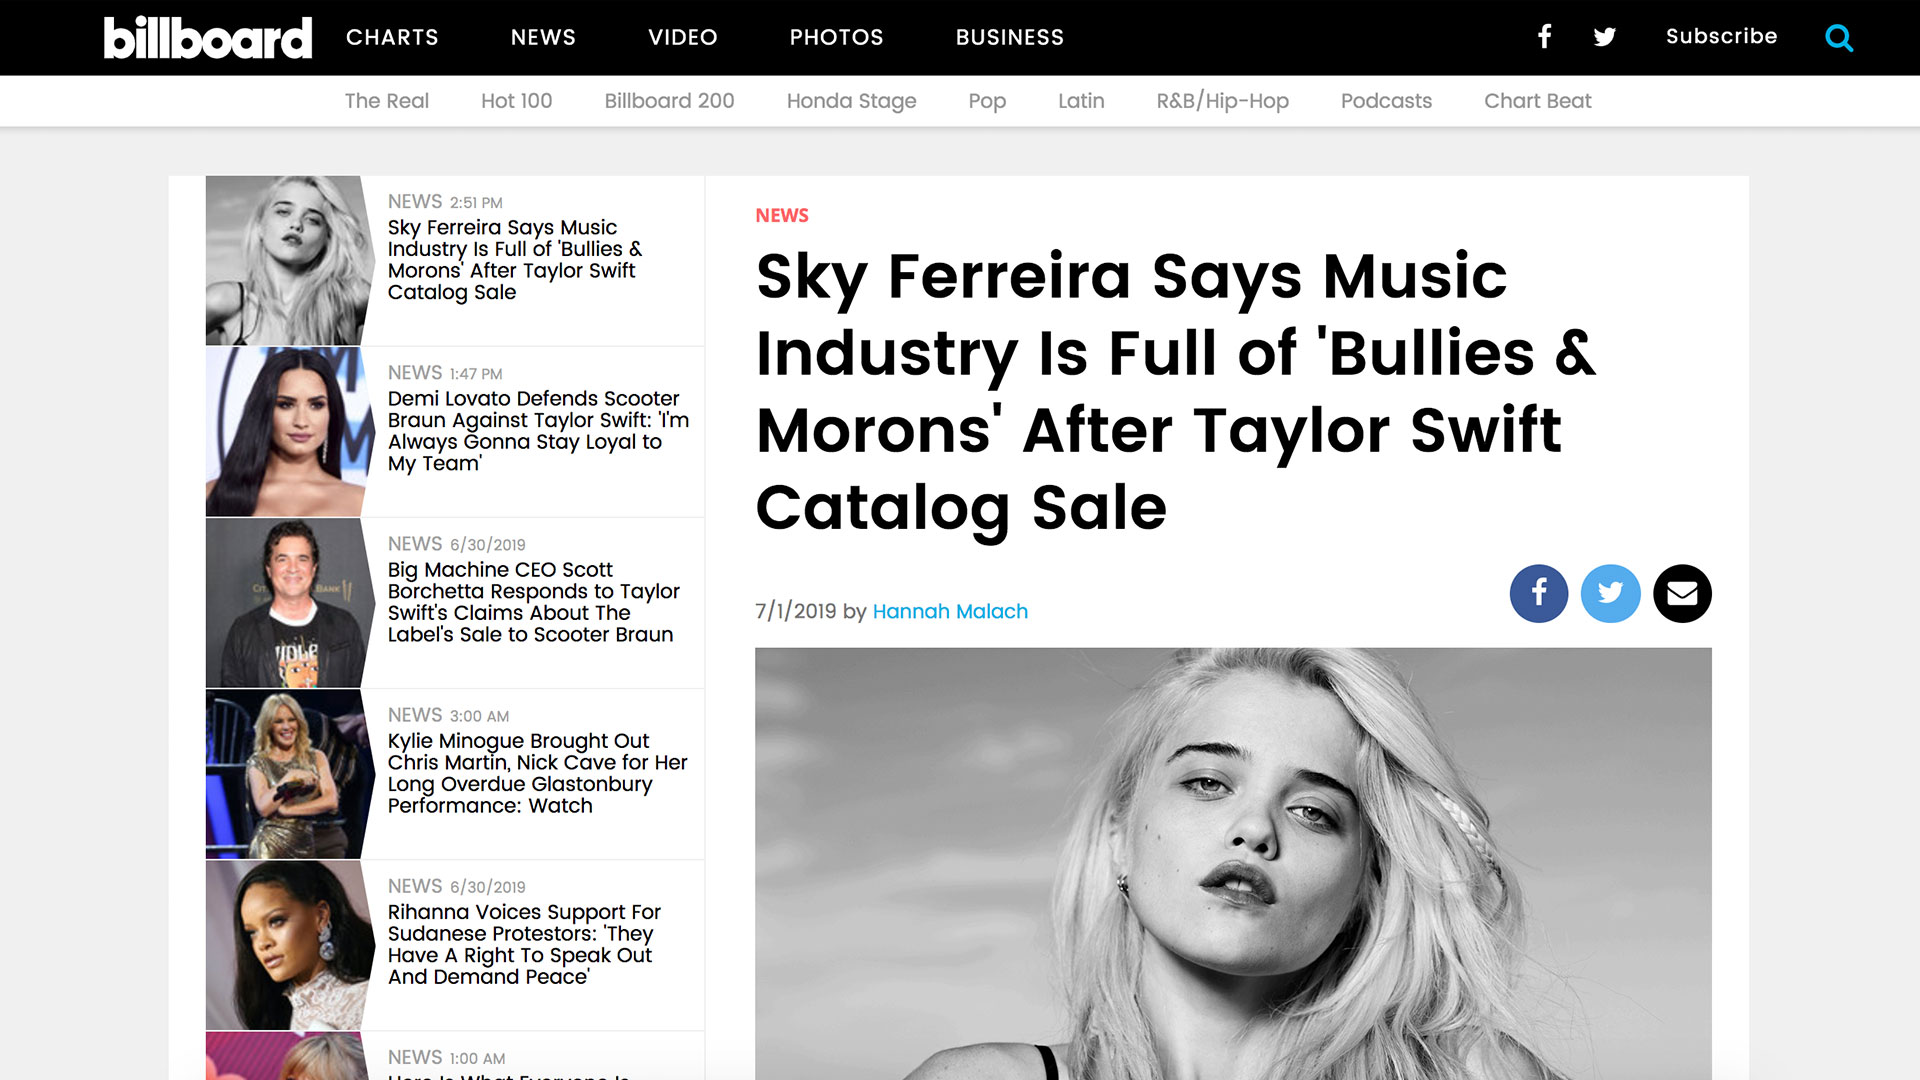 Fairness Rocks News Sky Ferreira Says Music Industry Is Full of 'Bullies & Morons' After Taylor Swift Catalog Sale